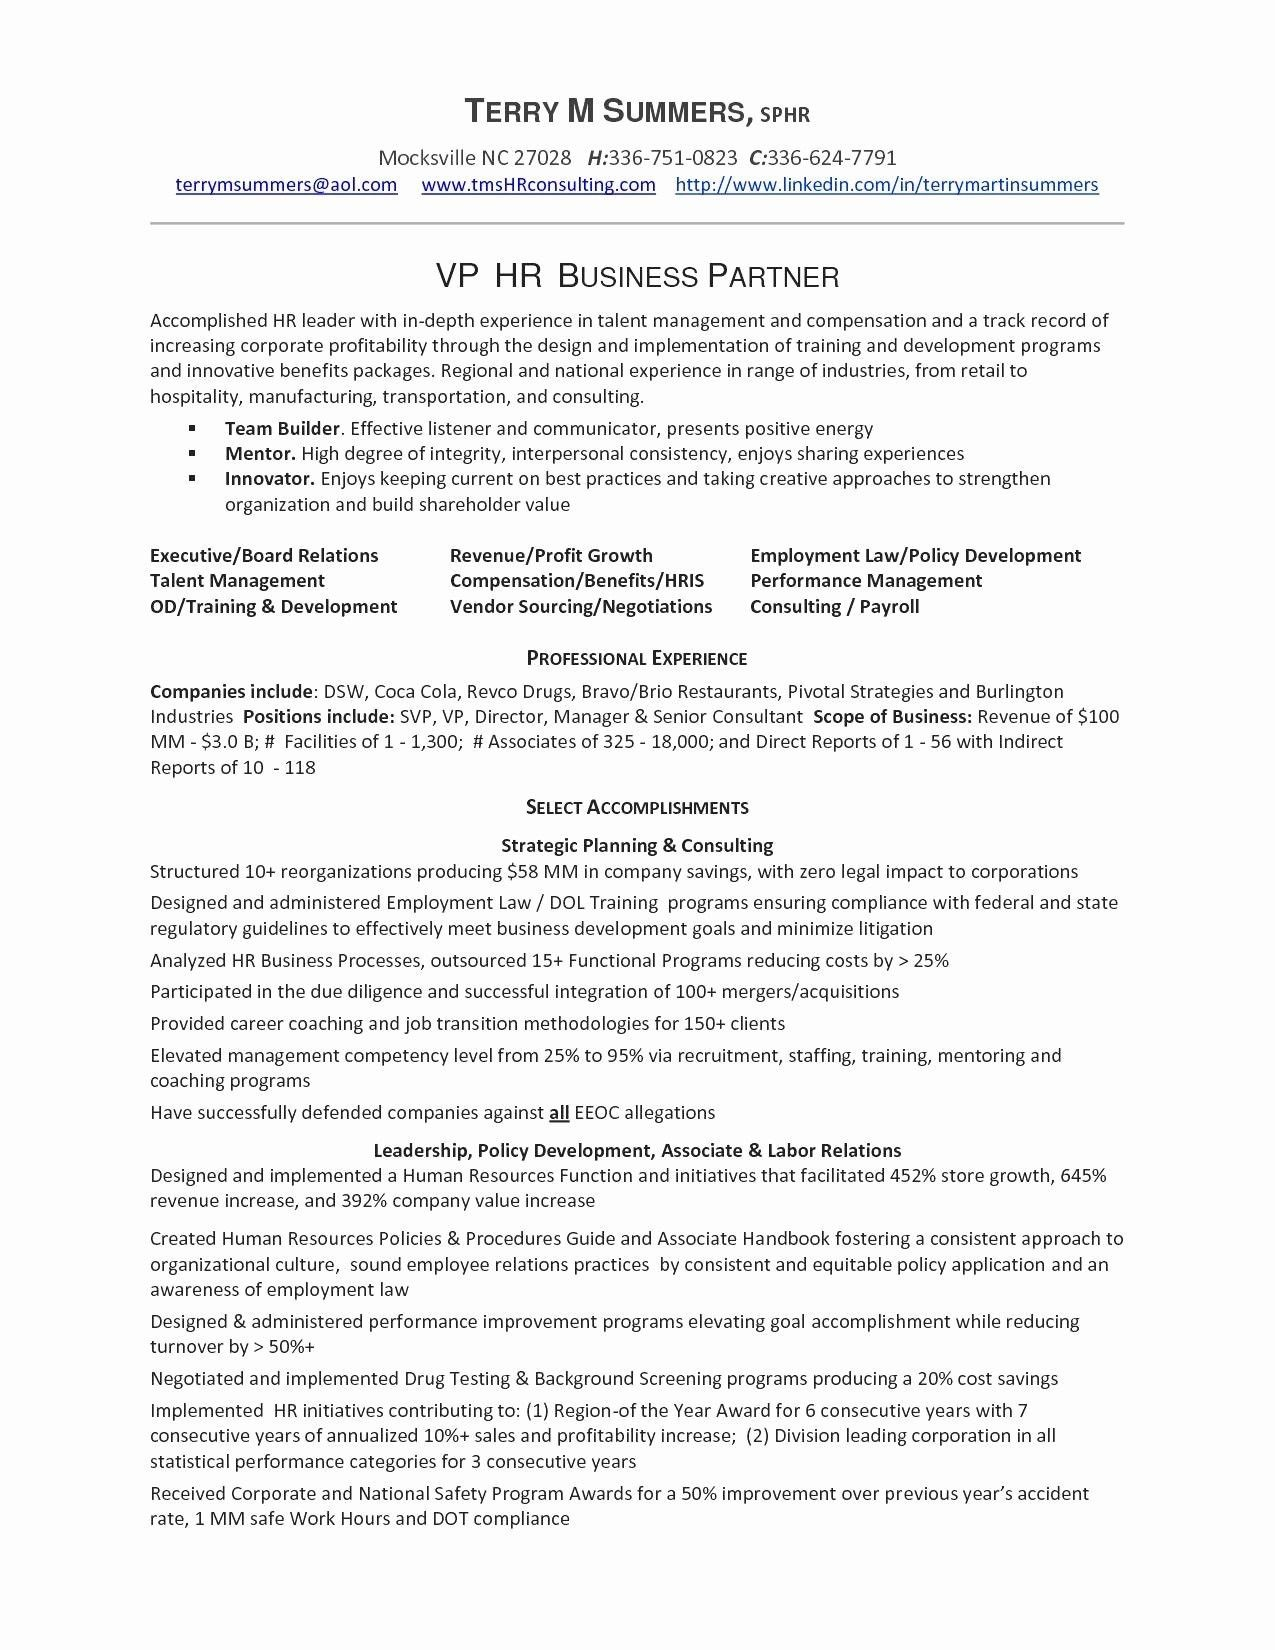 Office Manager Resume Template Free - Fice Manager Resume Template Free Resume Resume Examples